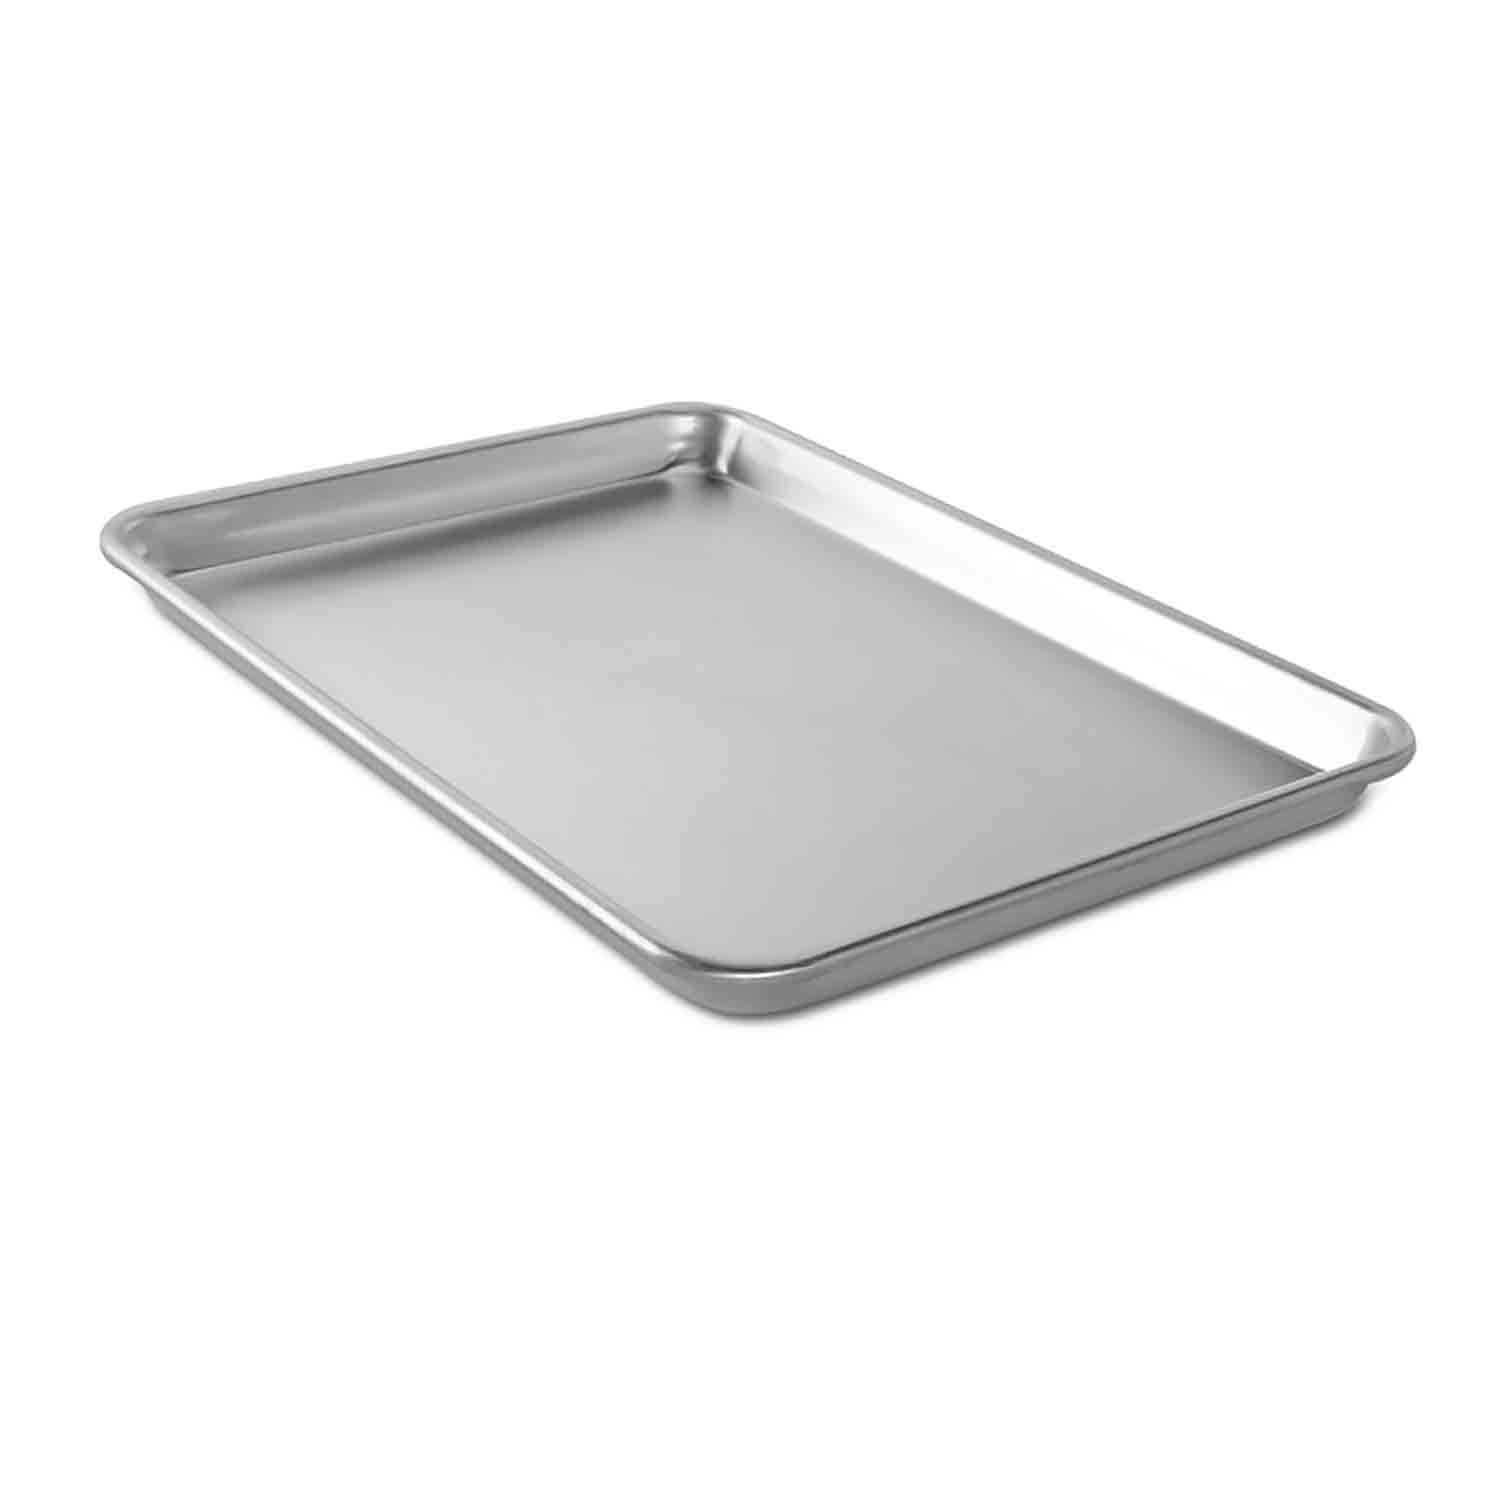 Jelly Roll Baking Sheet